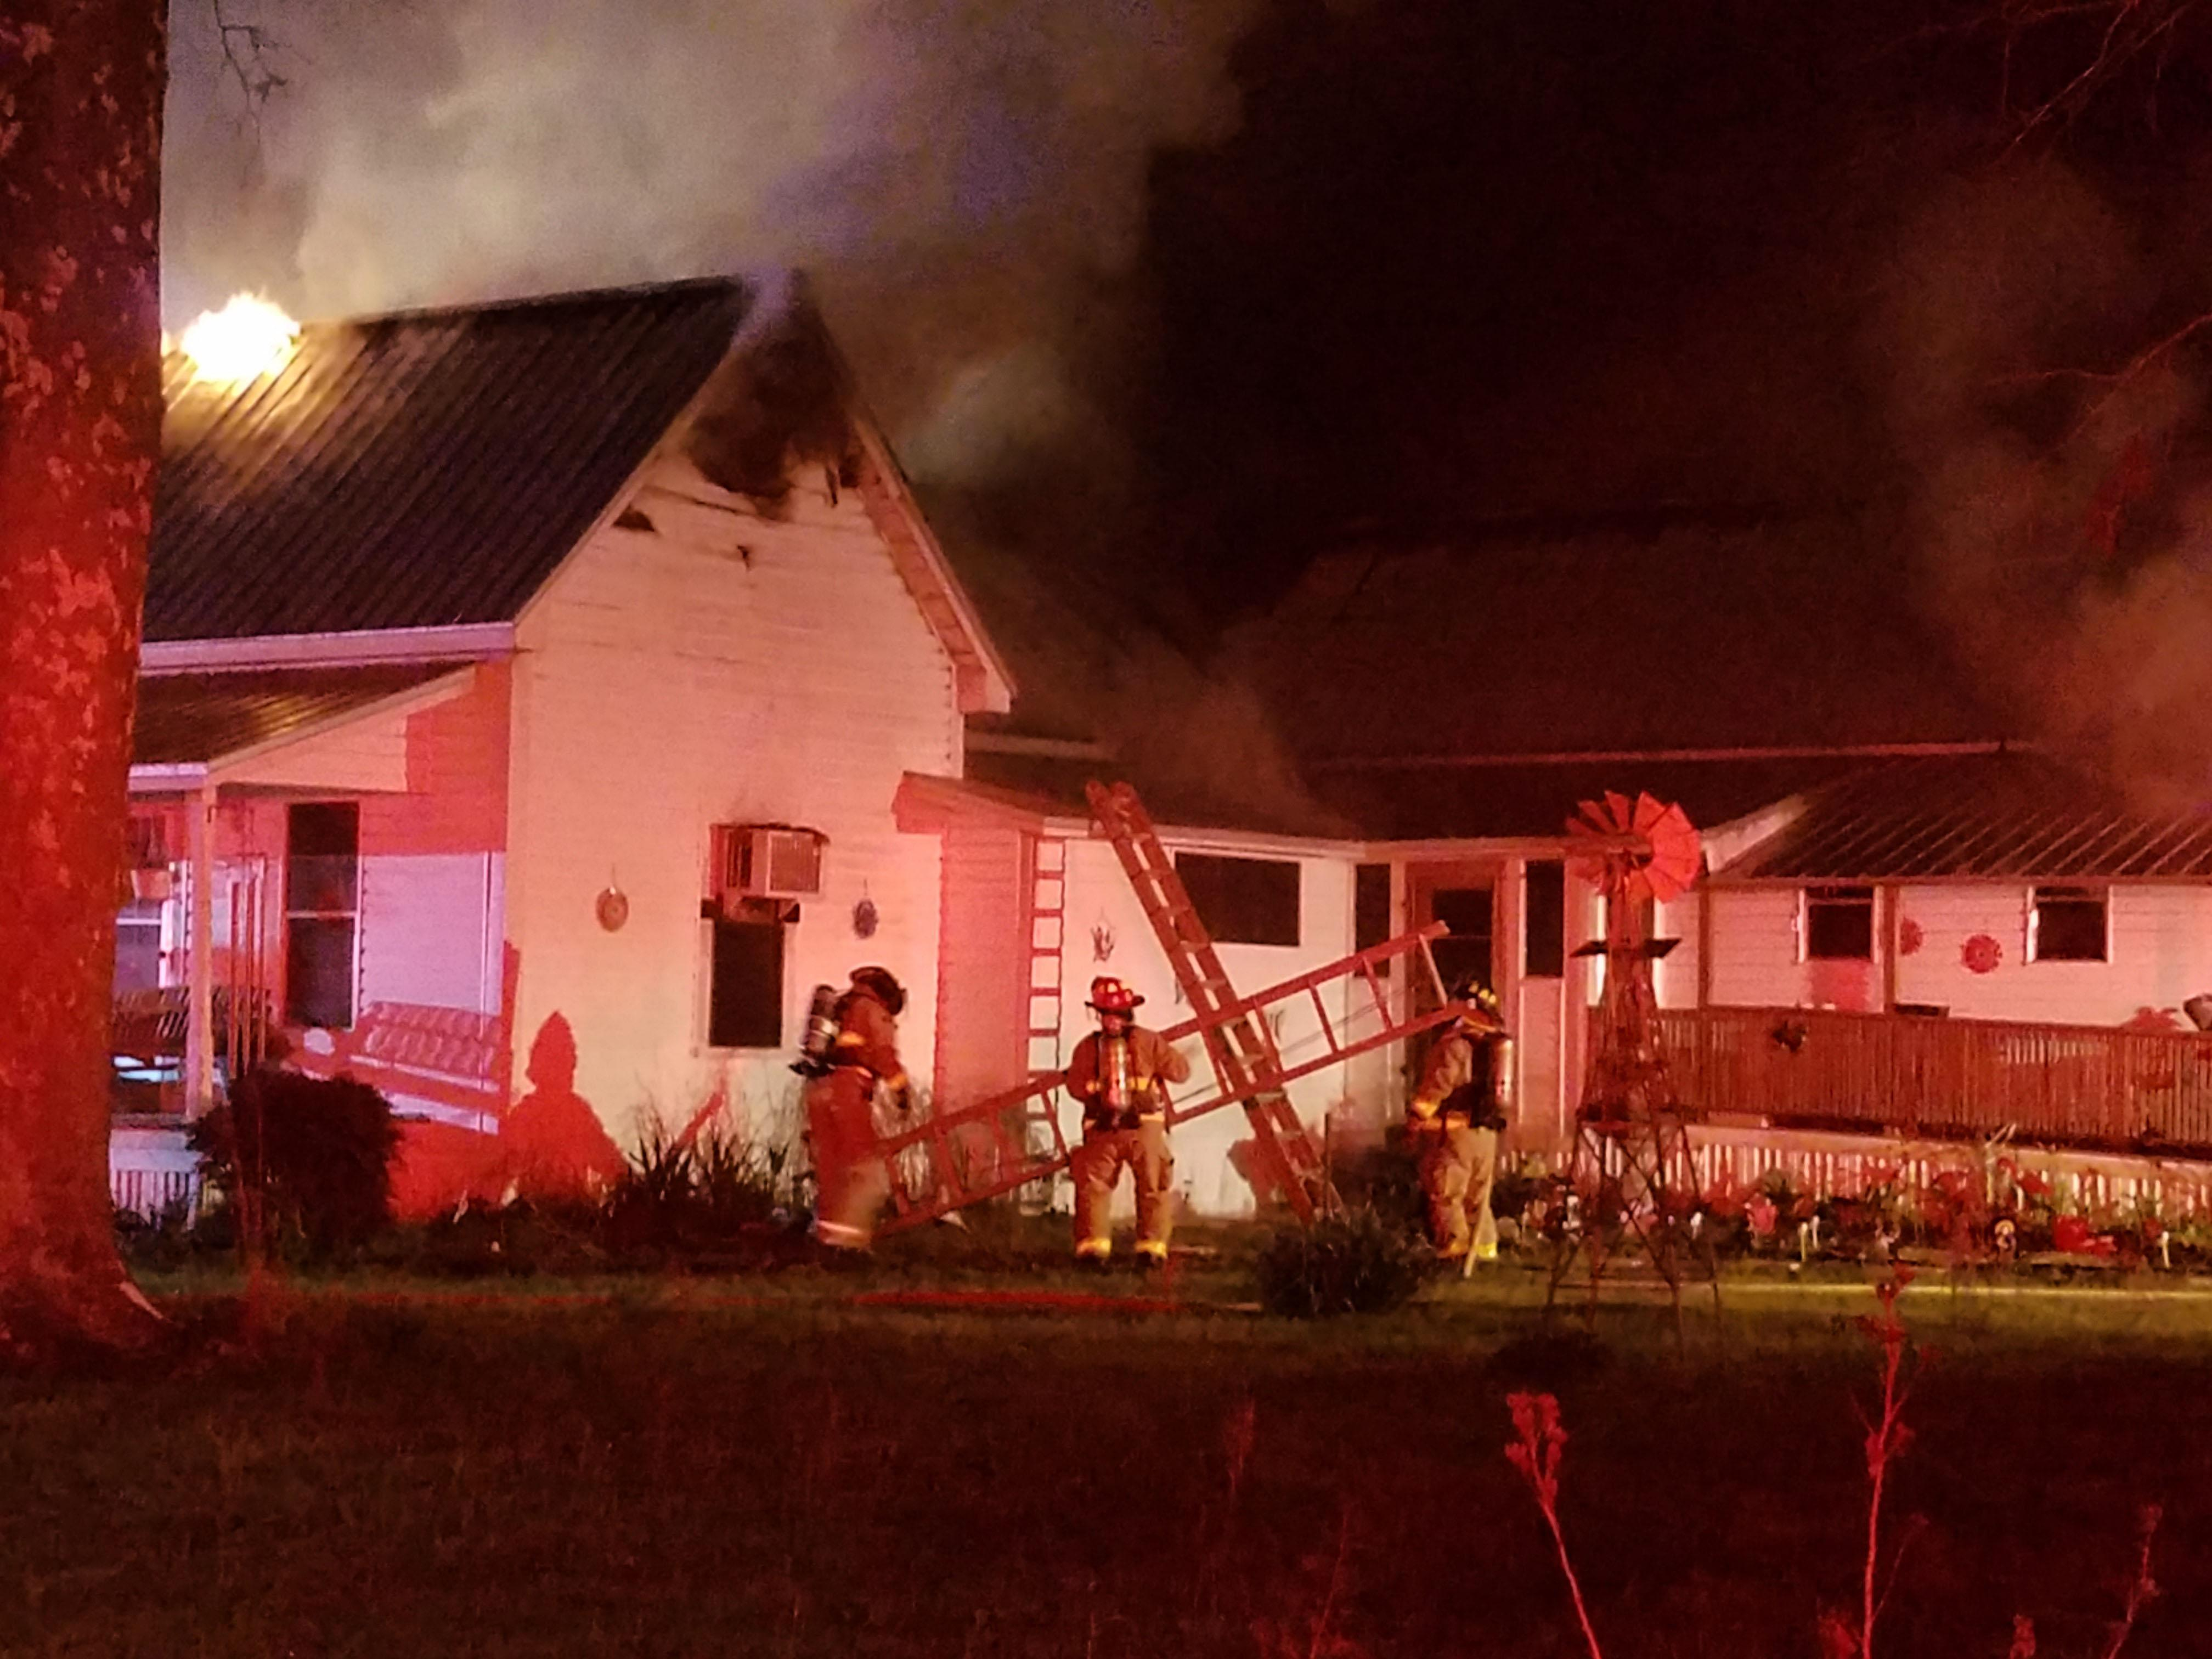 Photo: Firefighters Battling Paxton House Fire Source: Walton County Sheriff's Office